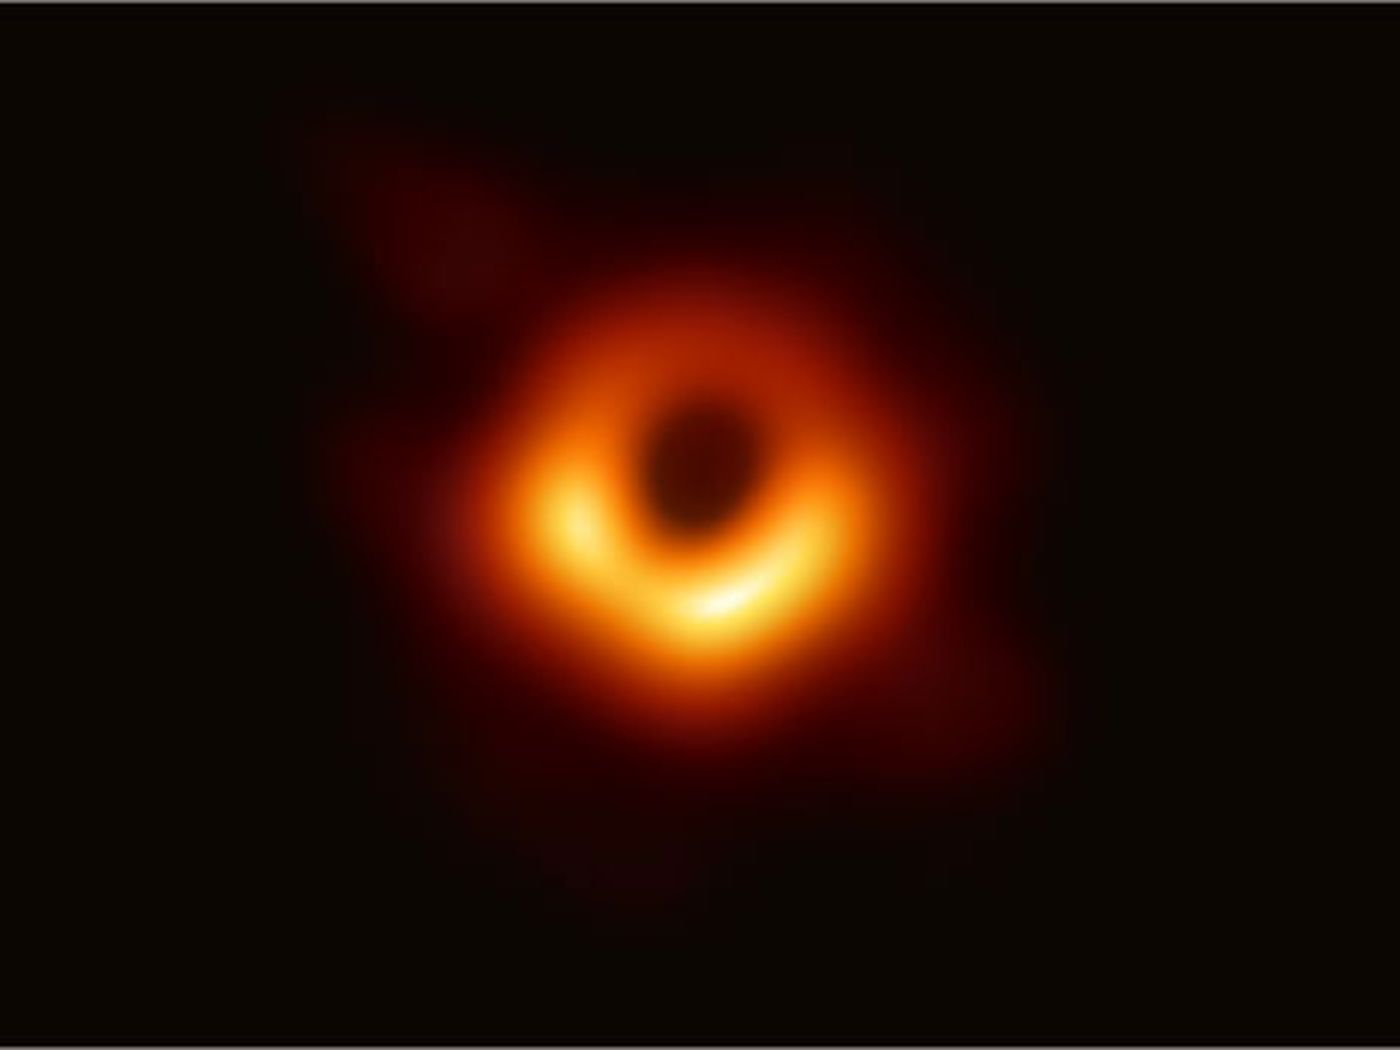 First-ever black hole photo announcement: How to watch the Event